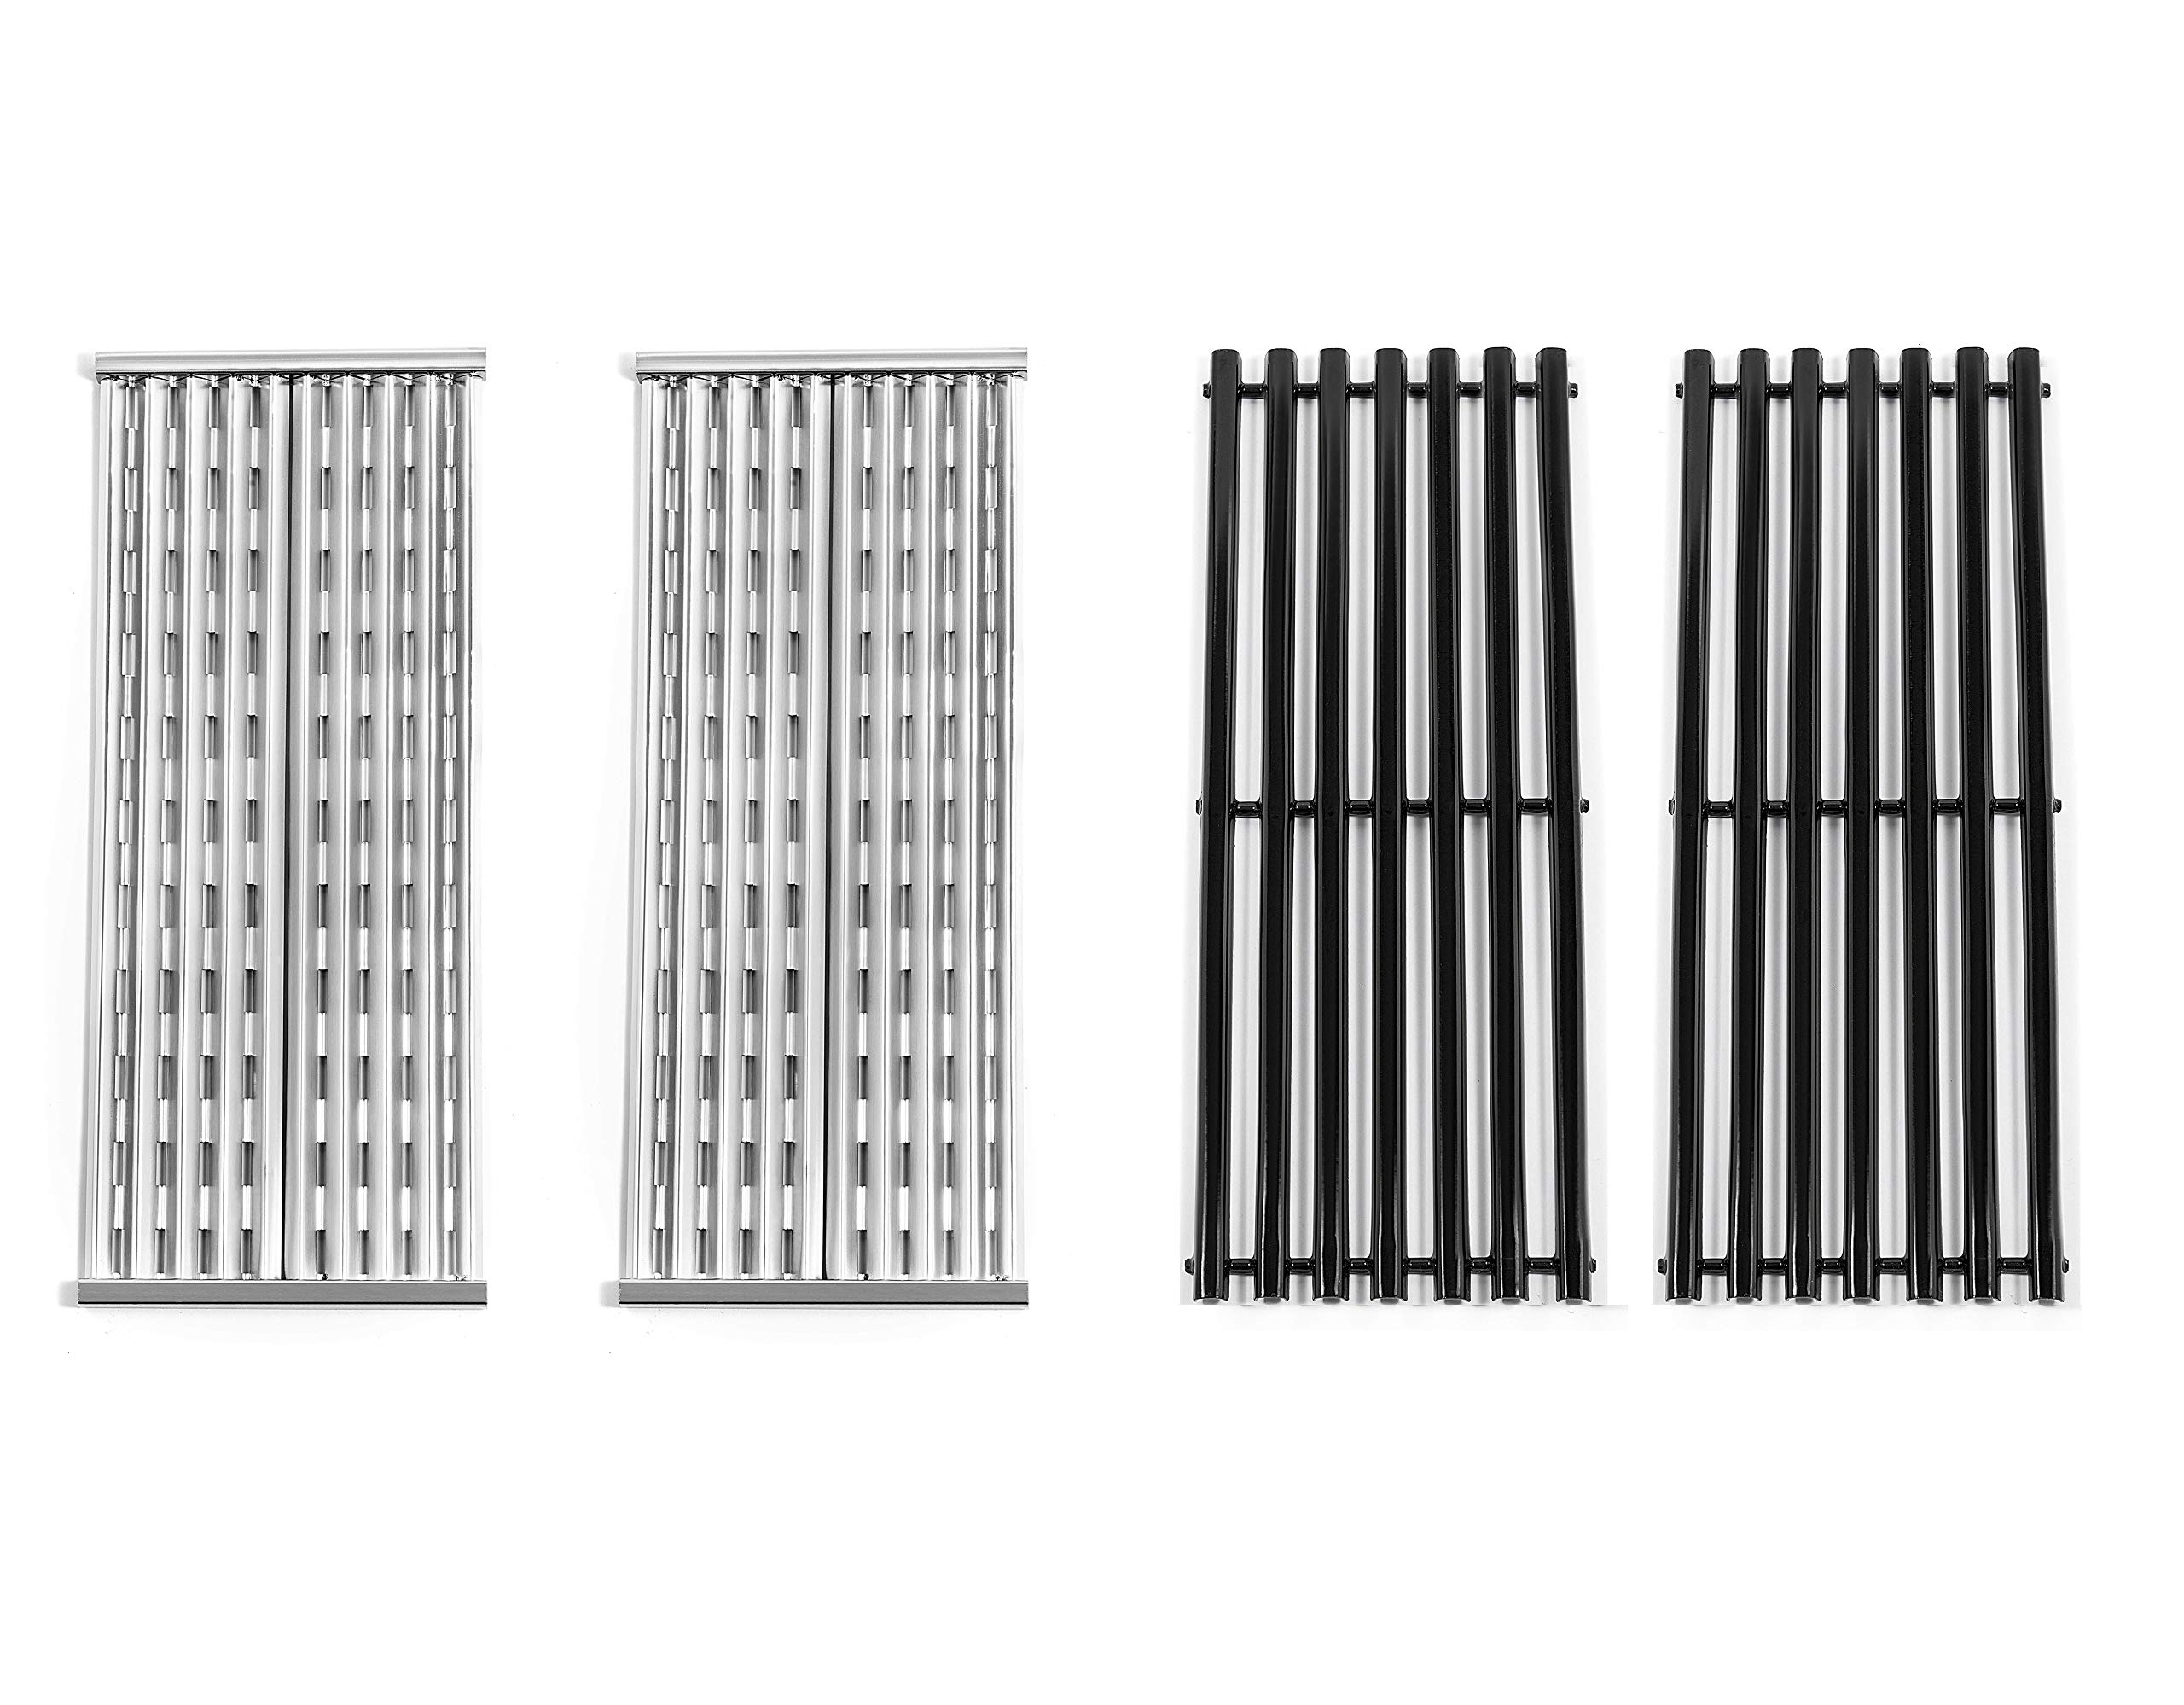 Replace parts 2 Pack Stainless Steel and Porcelain Steel Cooking Grid Replacement for Charbroil 463273614, 466241013,466246910, 466247110 Gas Grill Models by Replace parts